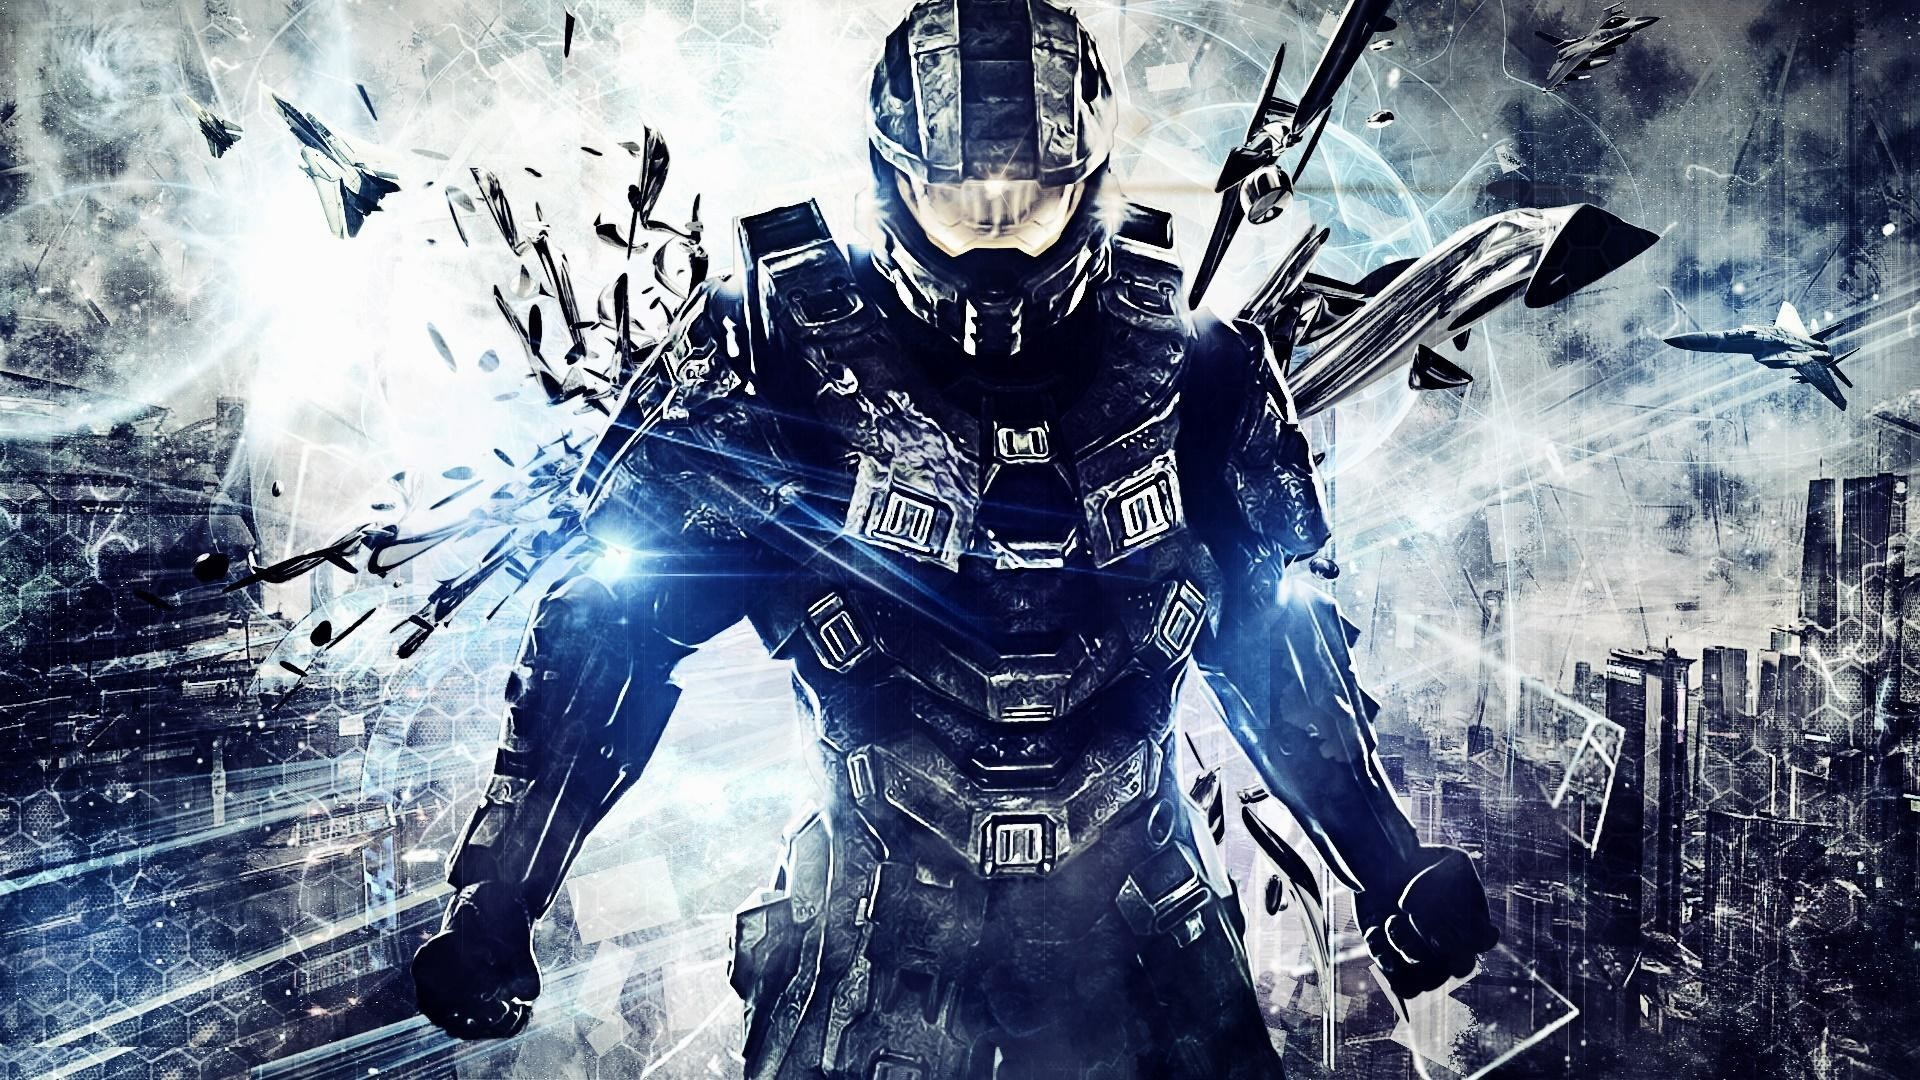 Halo 4k Wallpapers Hd Wallpaper Collections 4kwallpaper Wiki